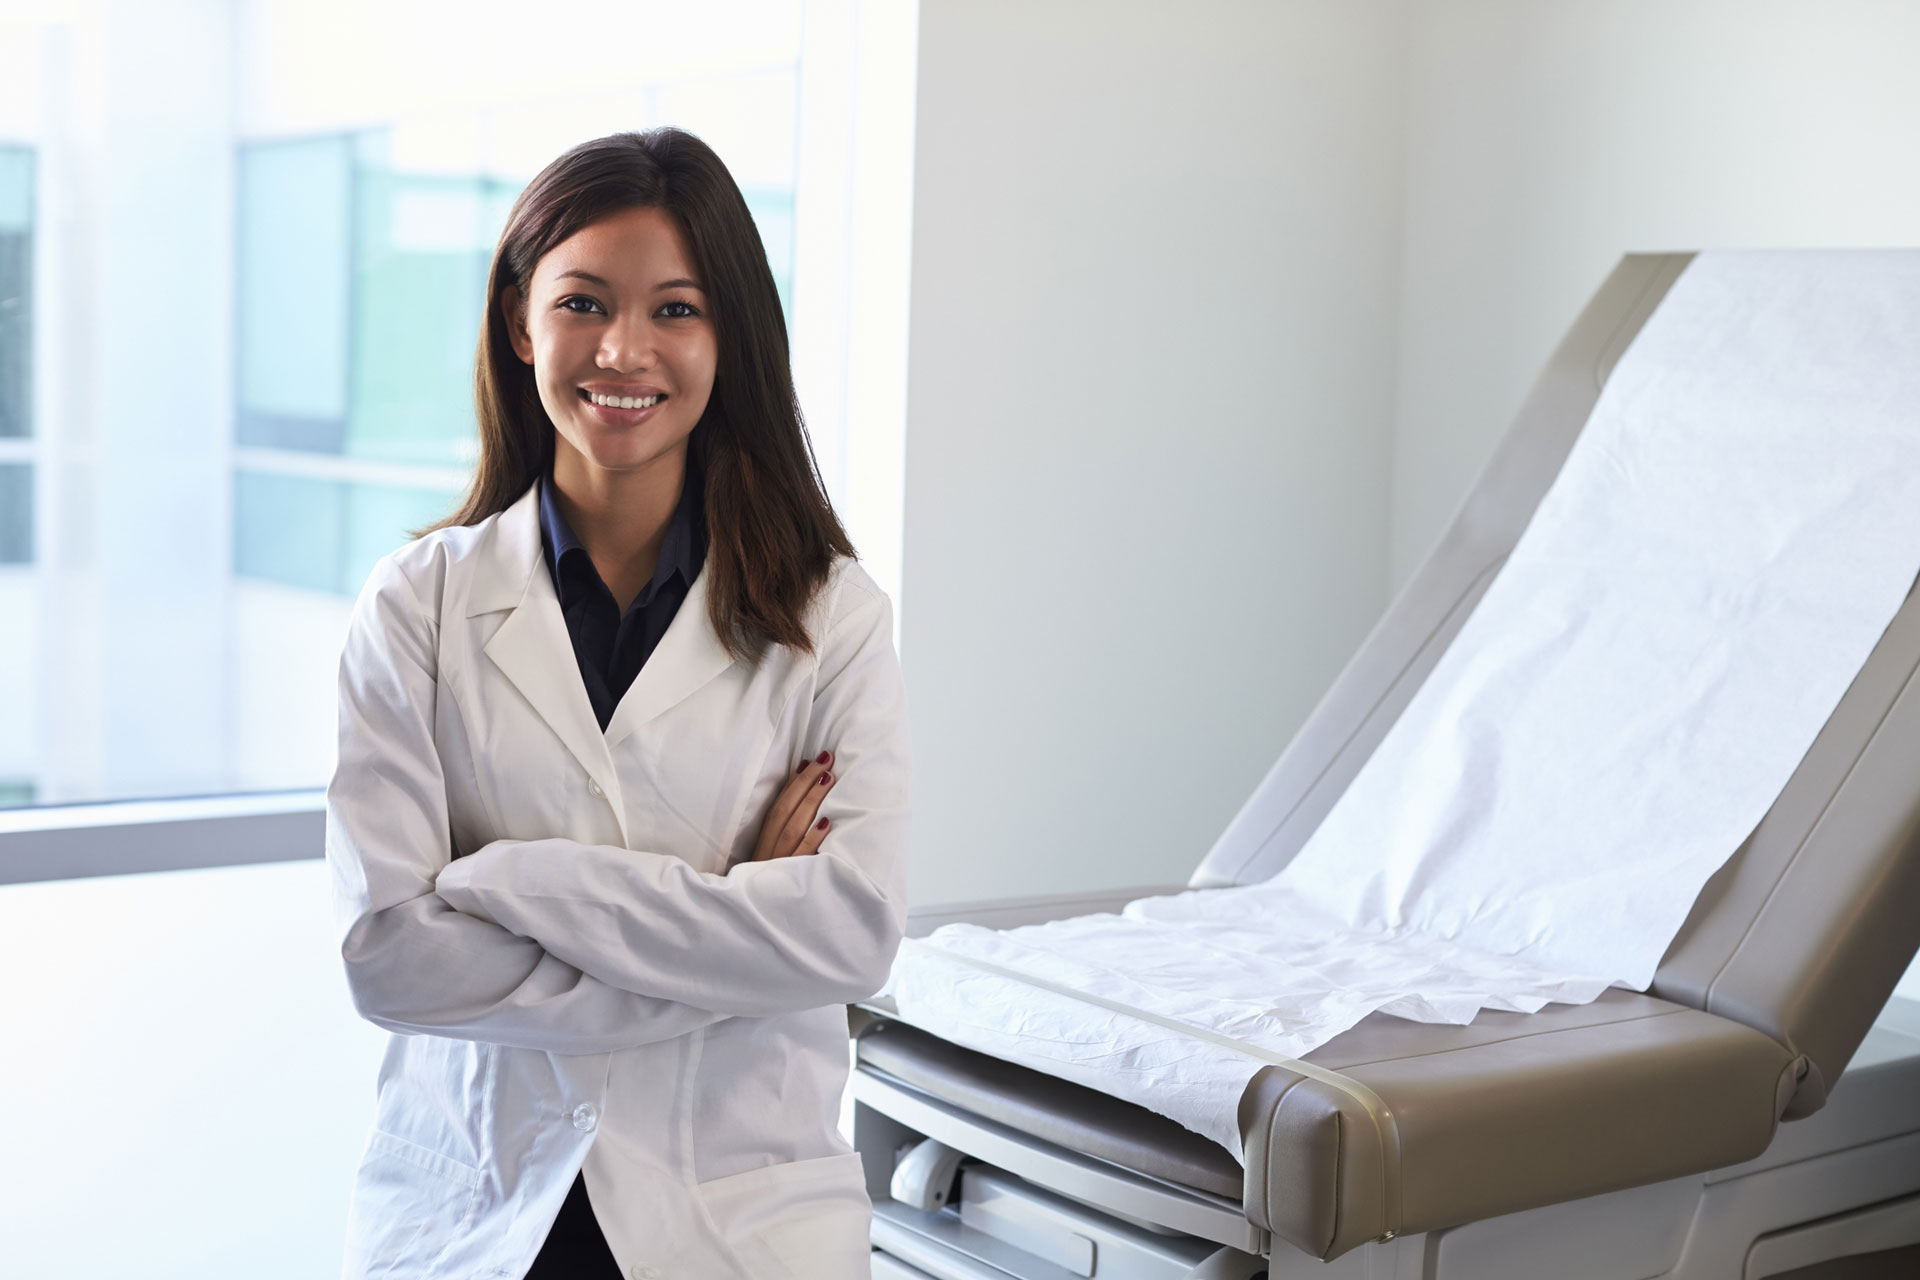 Top 5 Tips for the ANCC & AANP Family Nurse Practitioner Exams